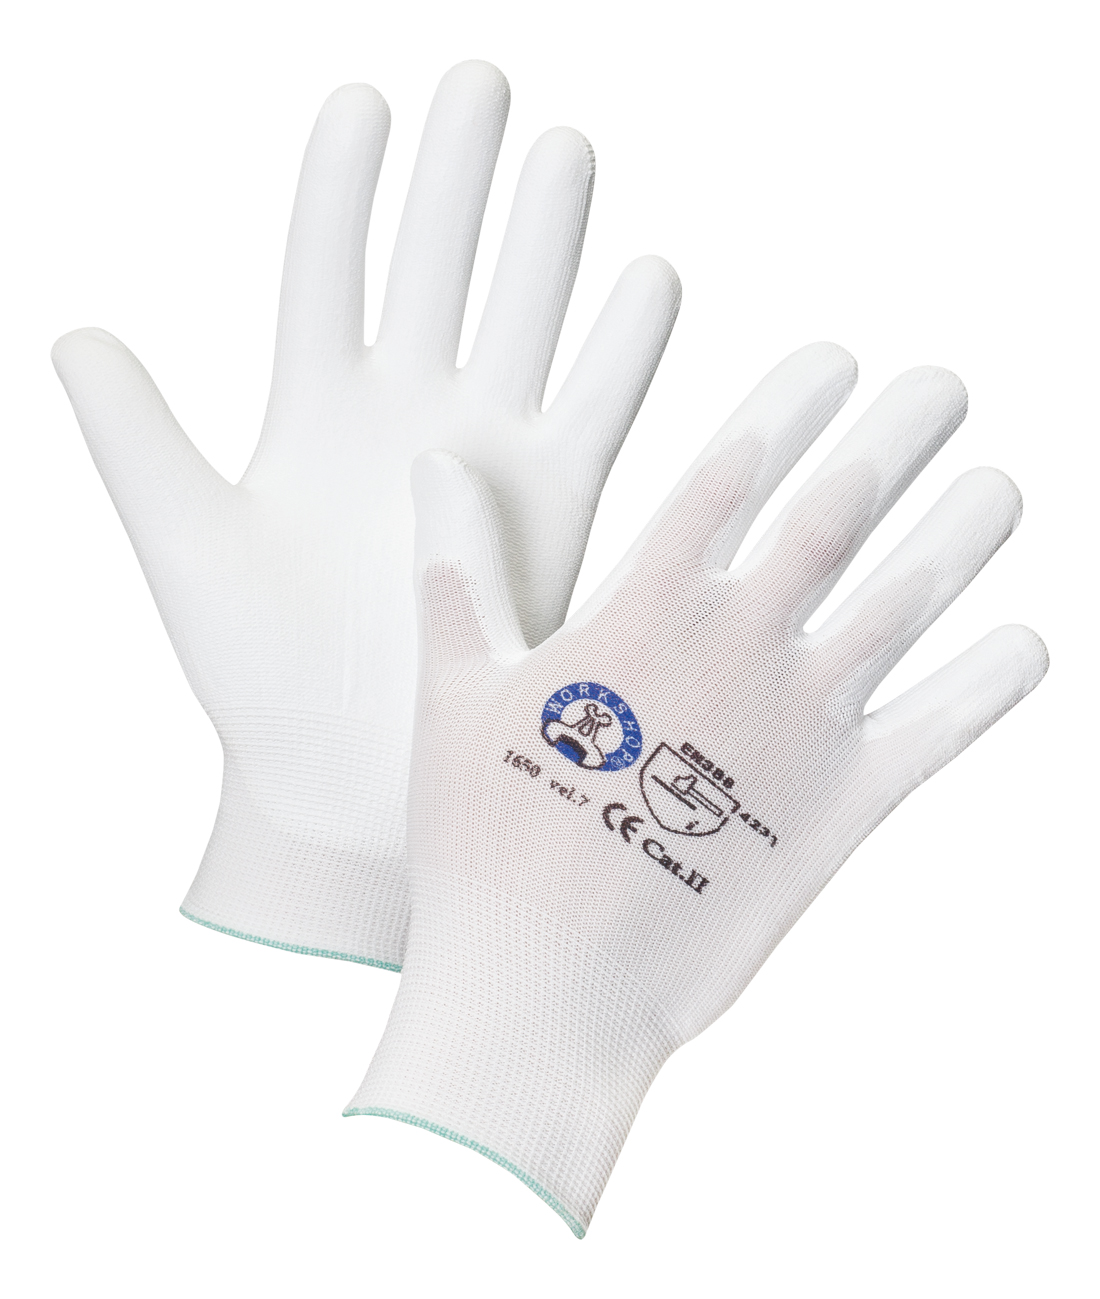 AERO Gloves PurtSkin 1650, thin Polyurethane Coating